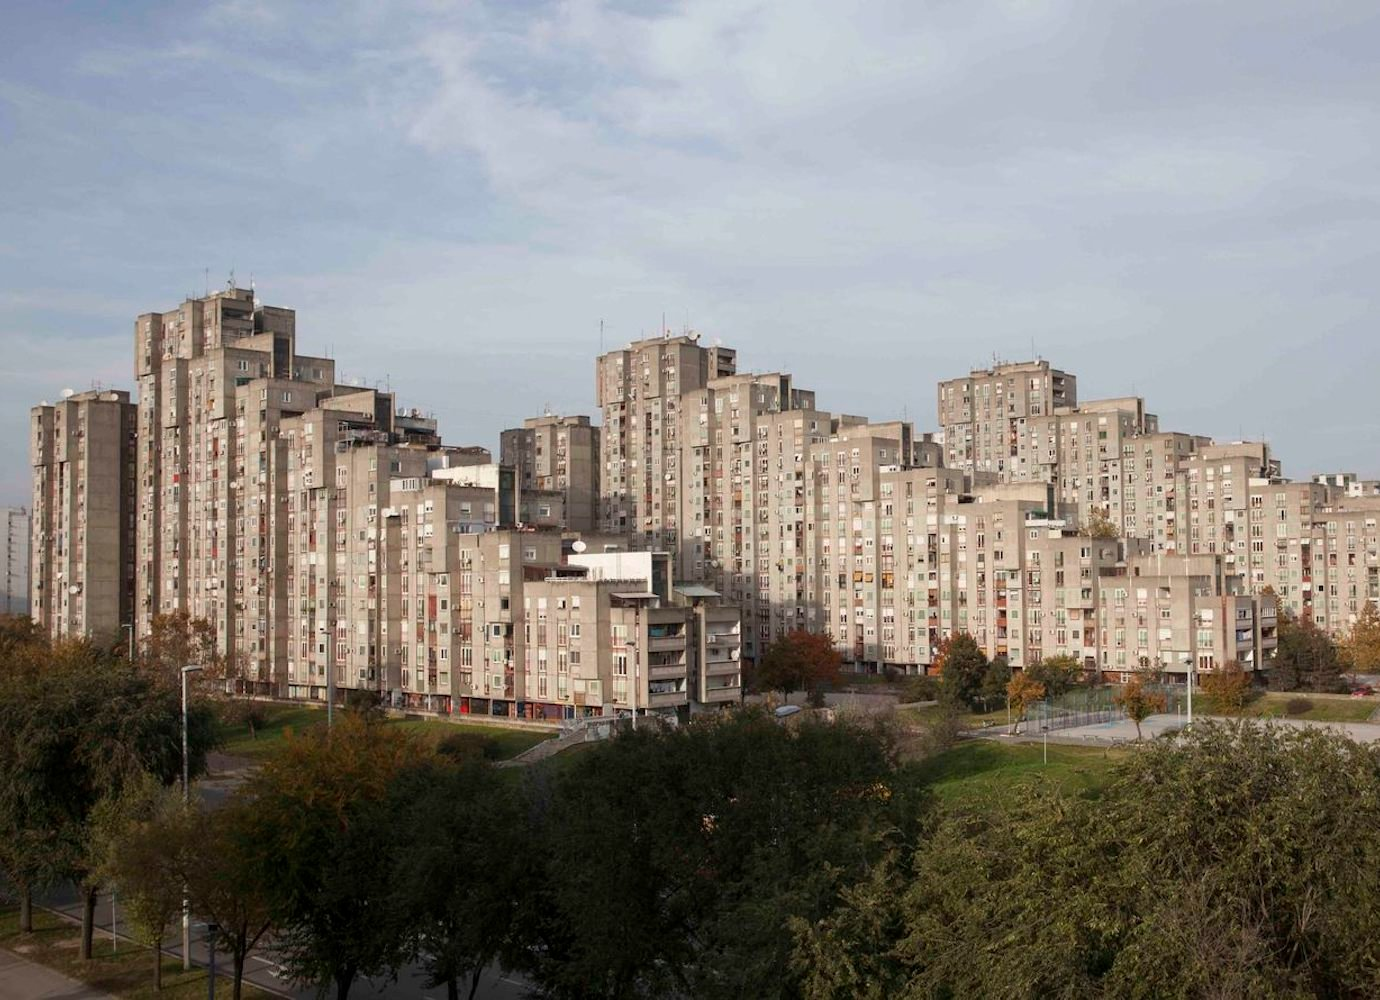 The grit and glory of New Belgrade's communist architecture